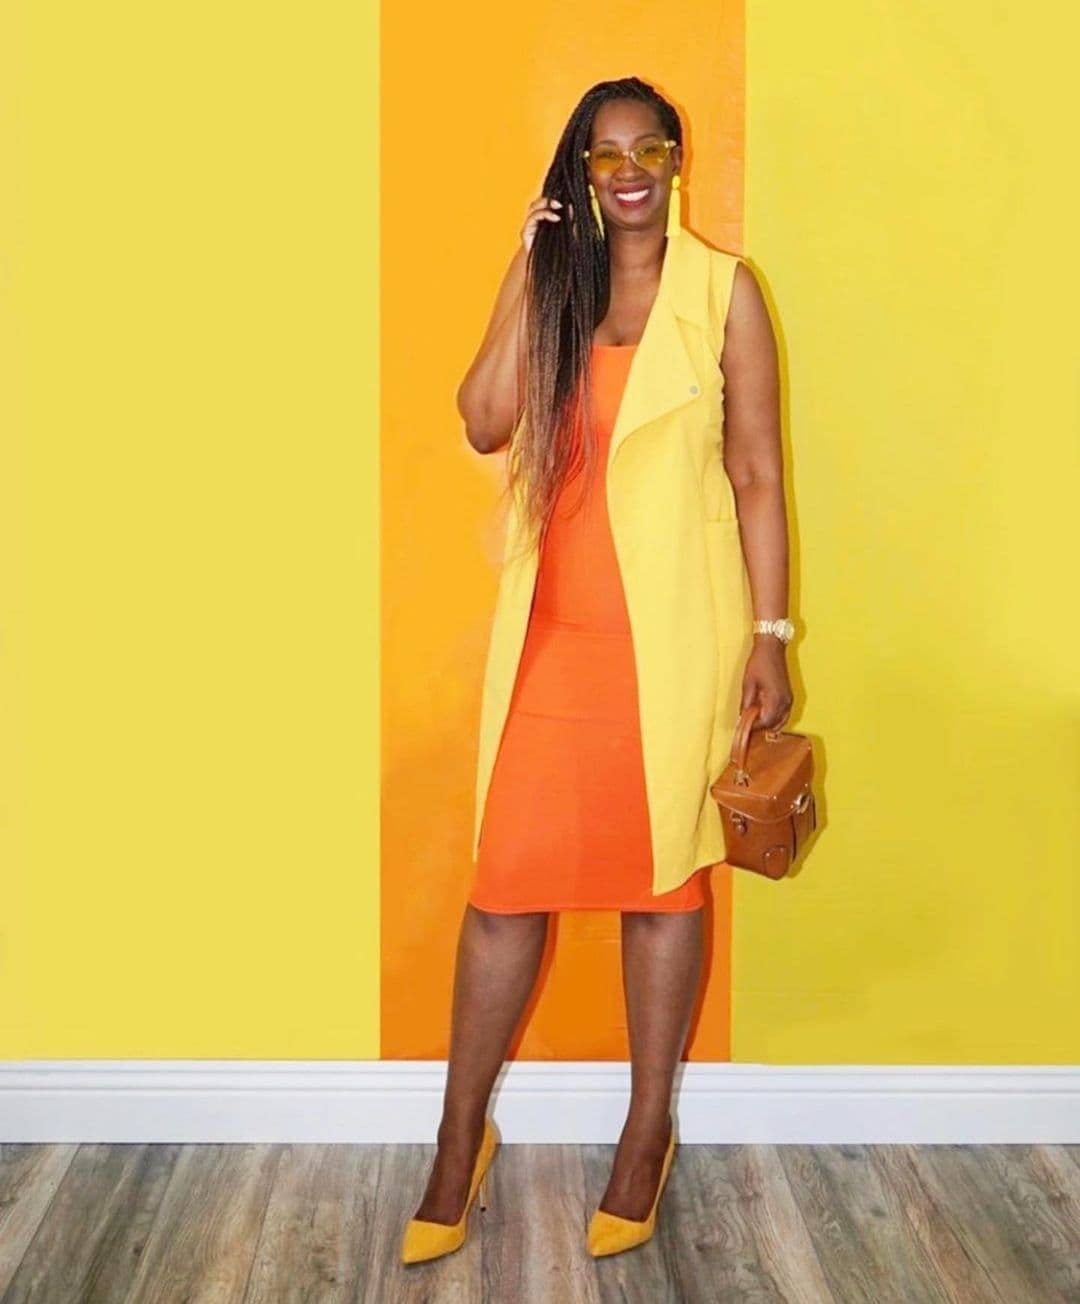 Tanasha wears a bright outfit of yellow and orange | 40plusstyle.com